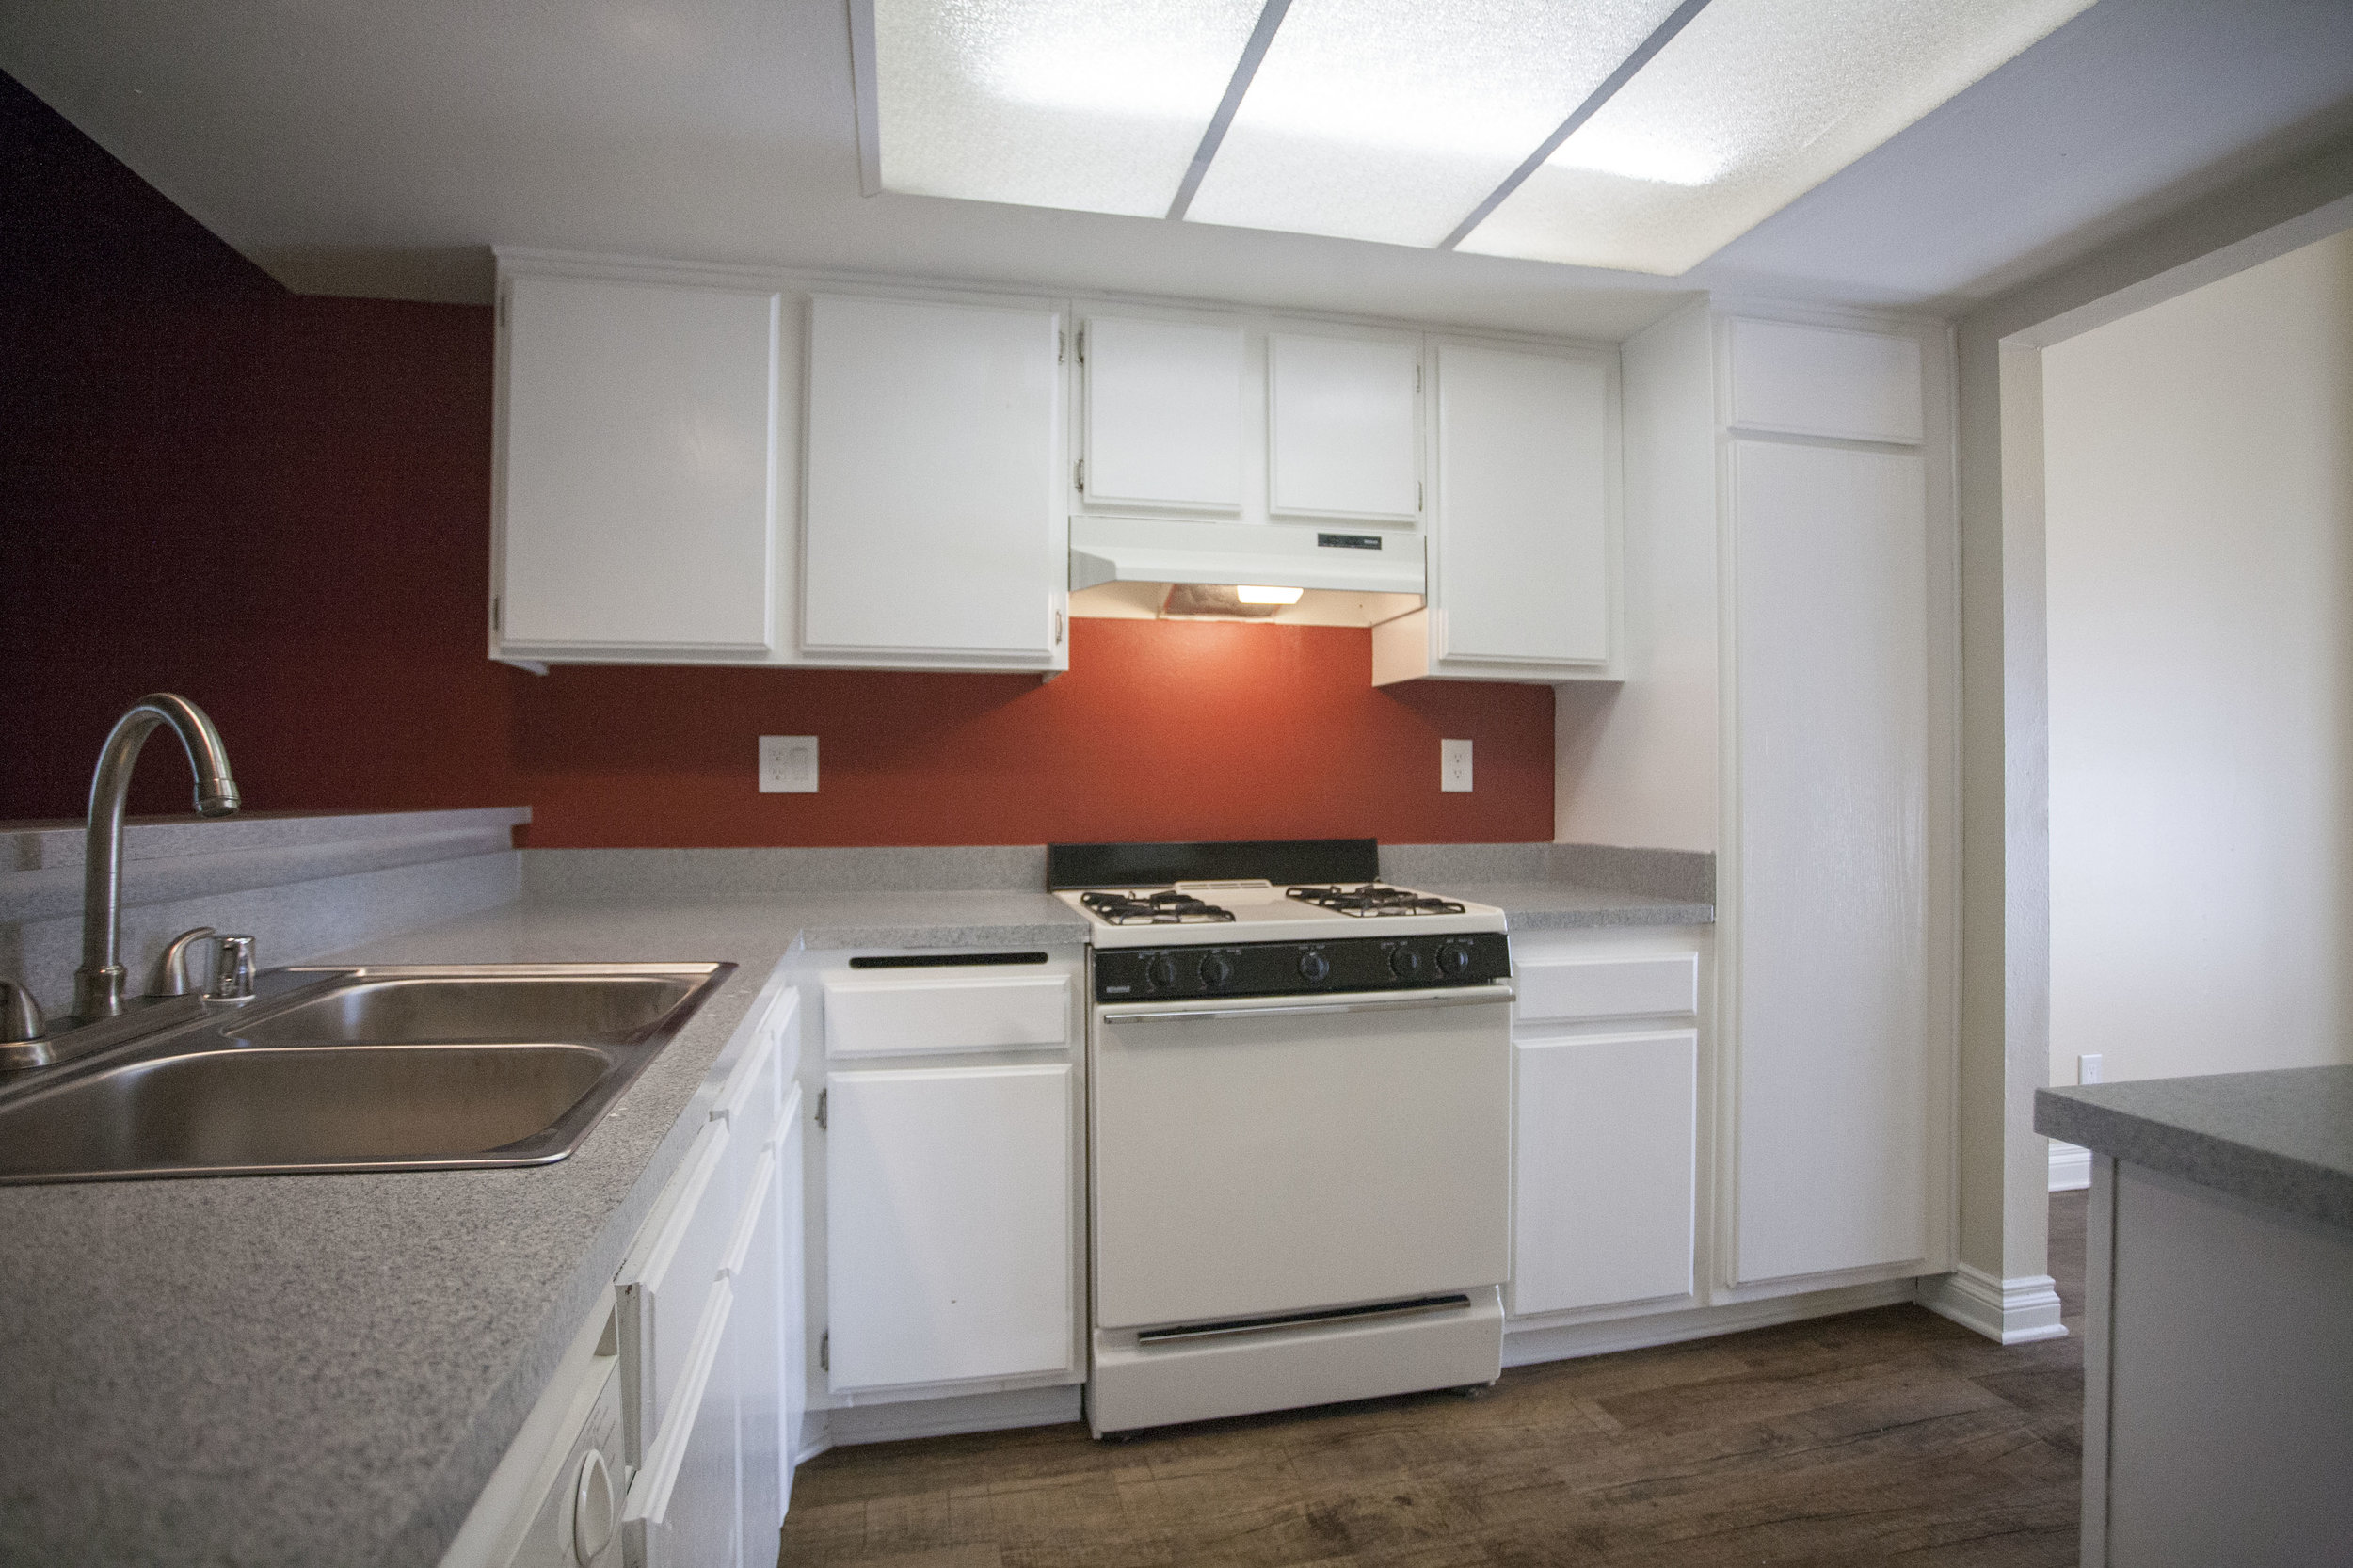 Kitchen at Lakeview Village